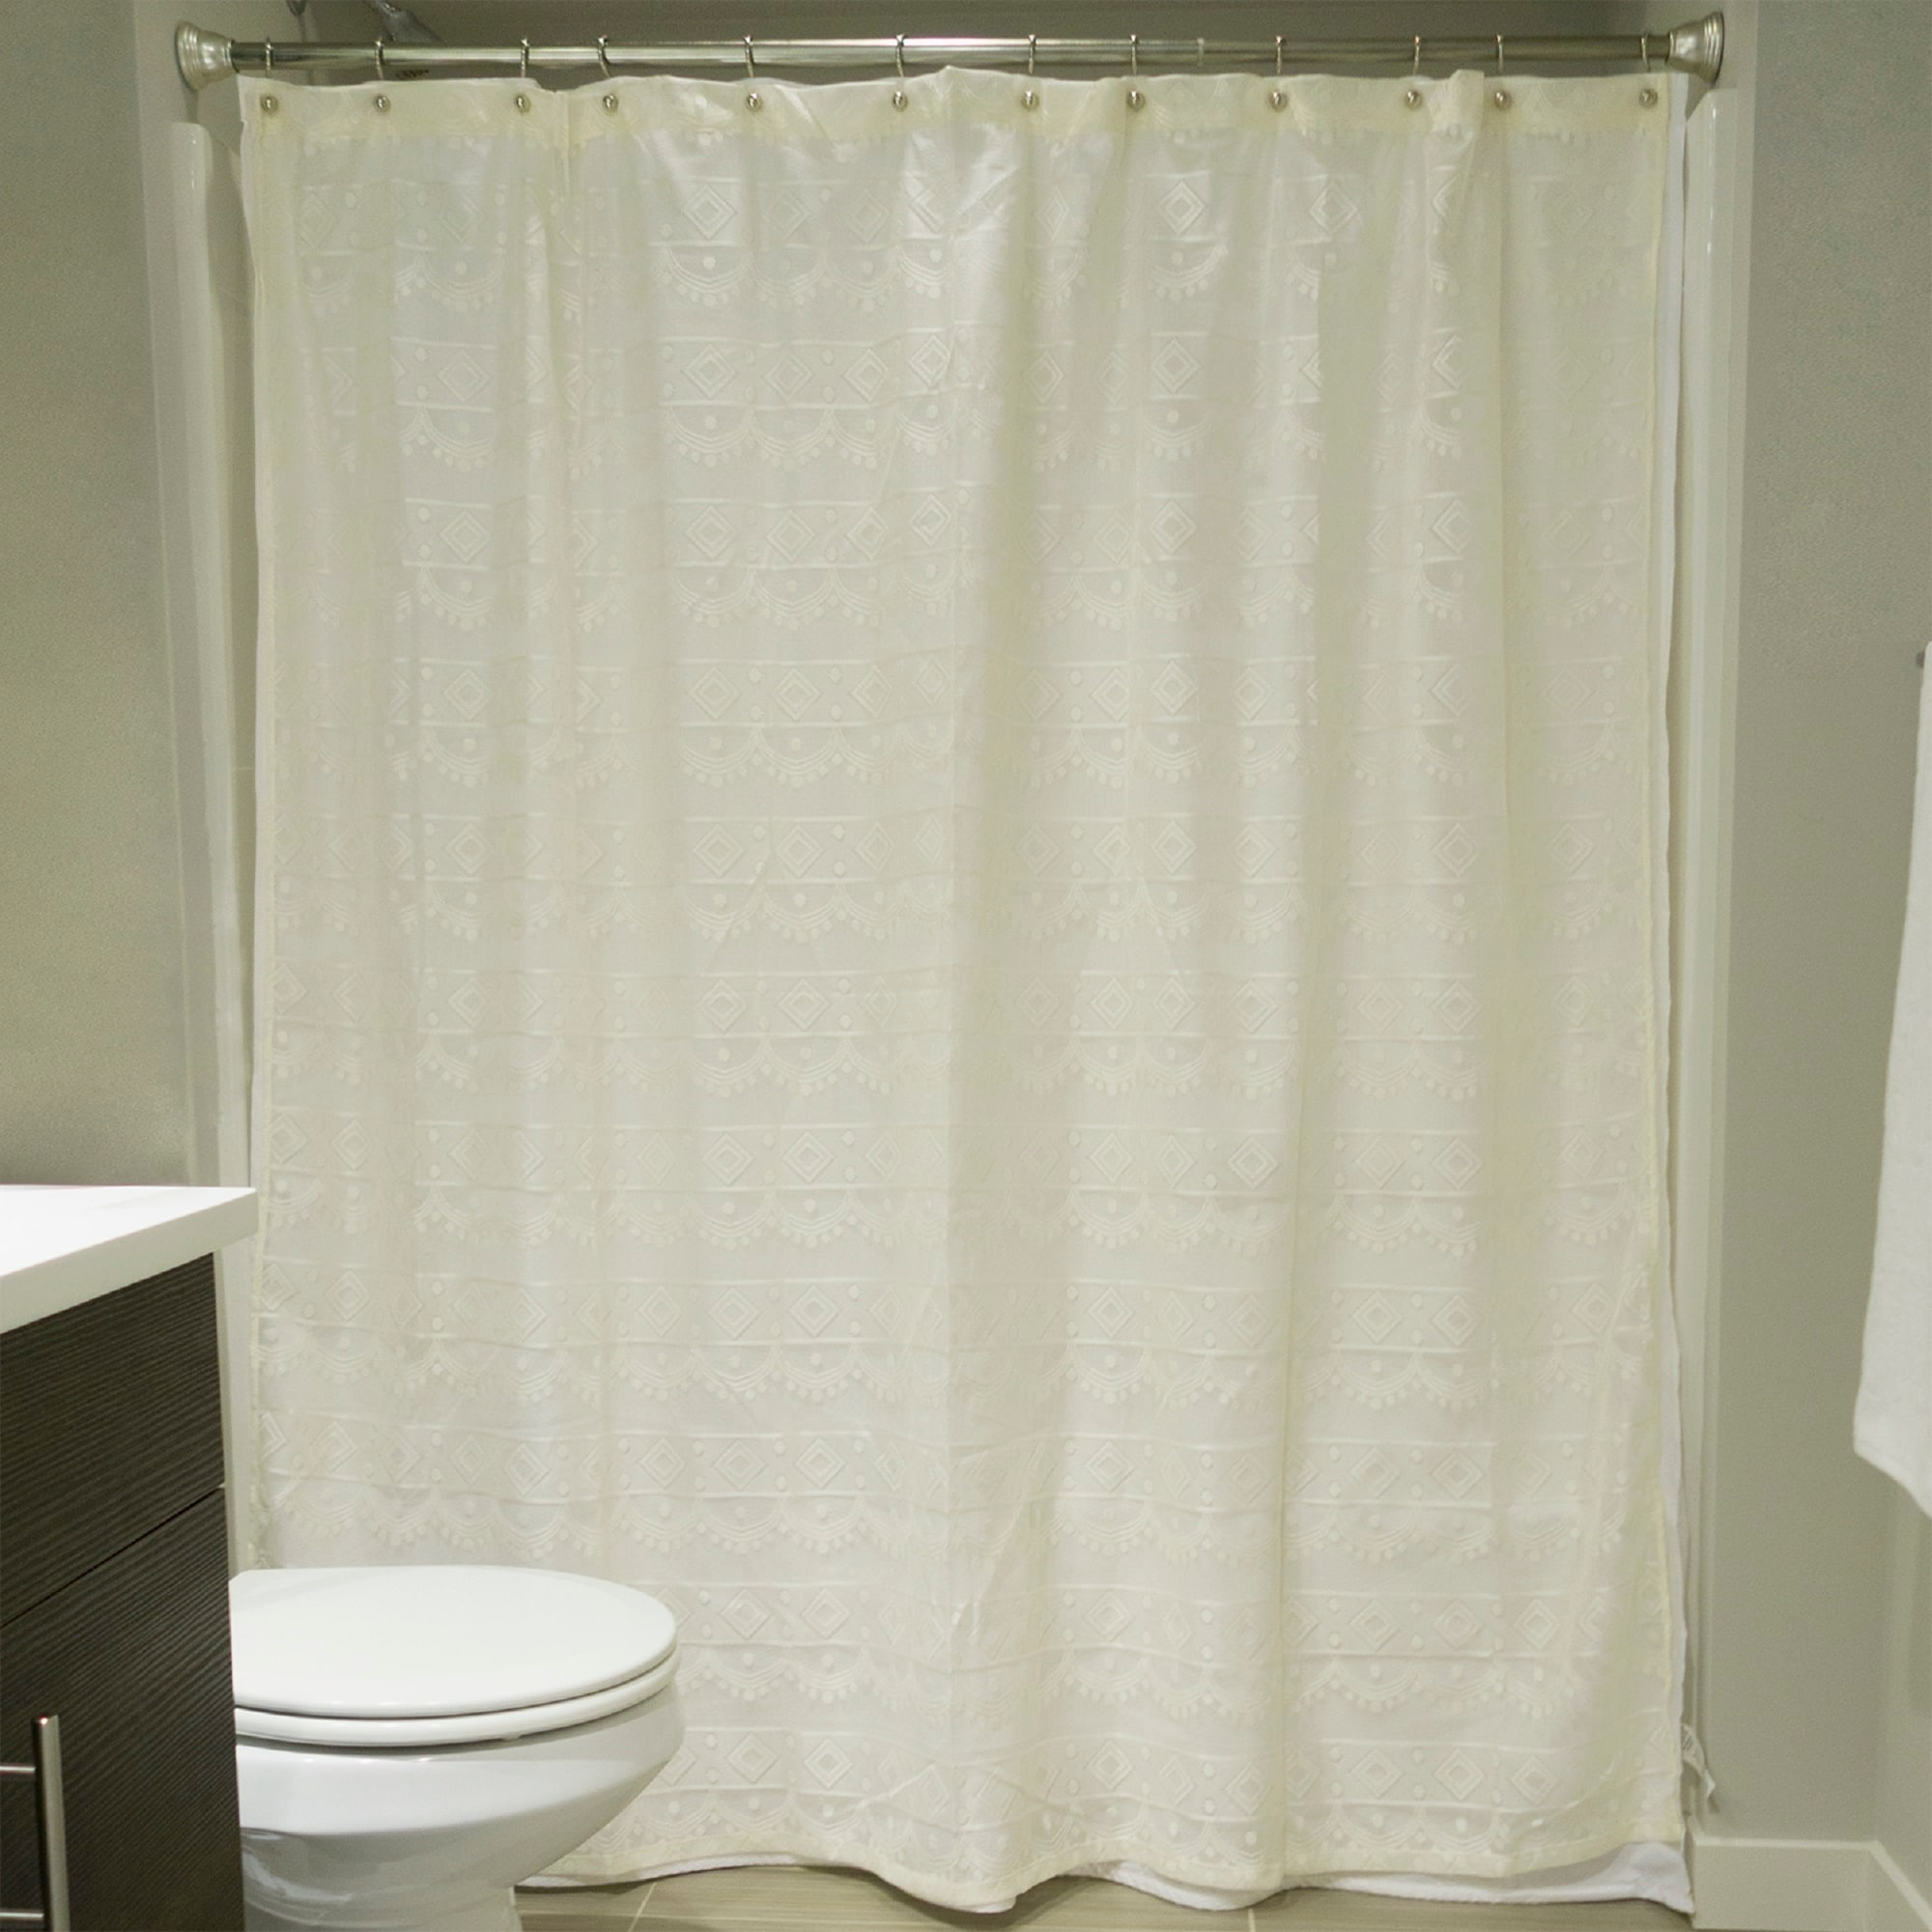 Shop Cream White Diamond Lace Patterned Decorative Square Shower Curtain 72 X 72 Overstock 22579249